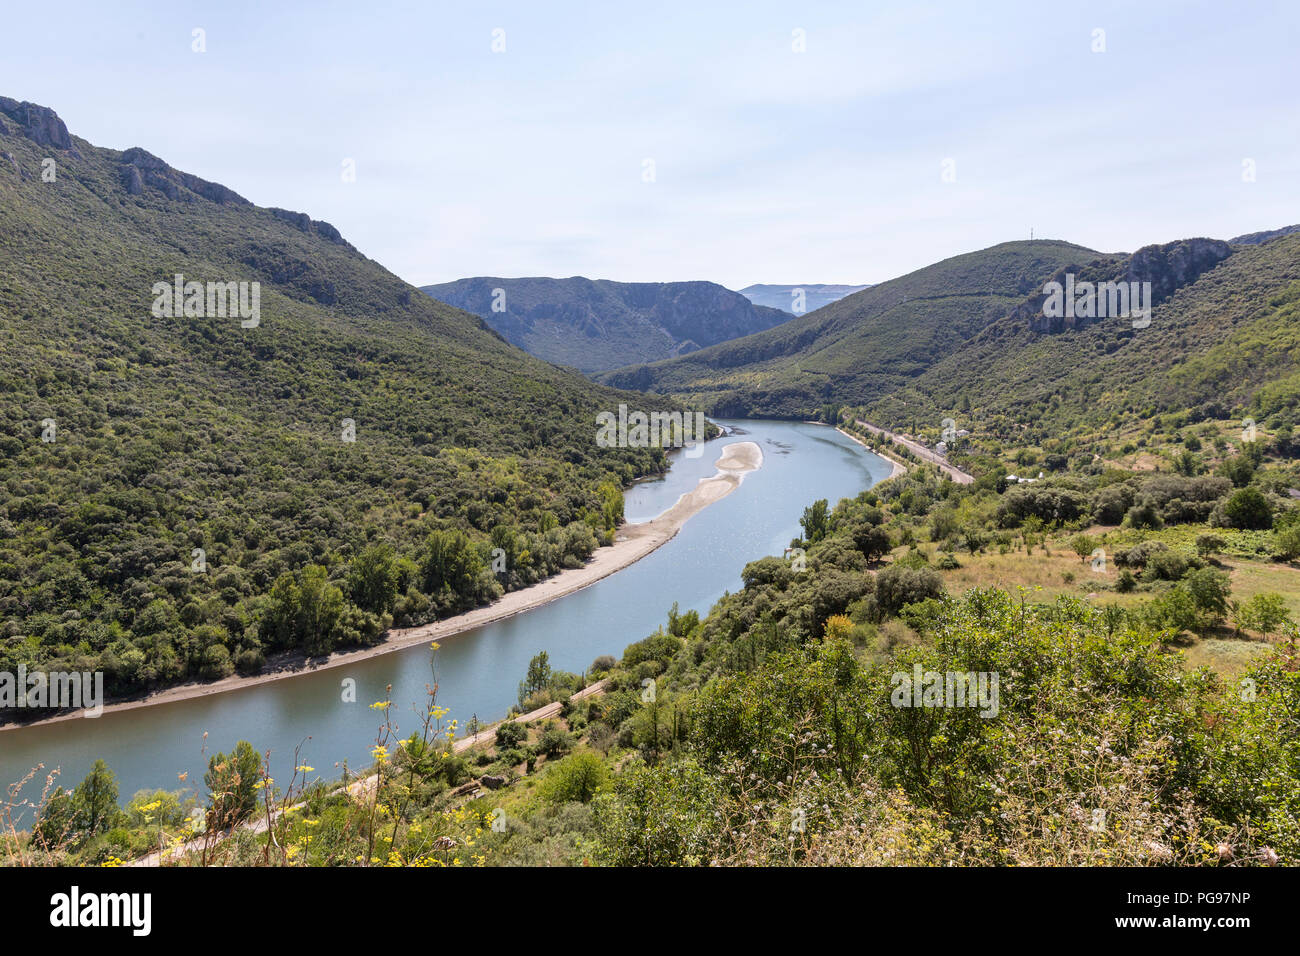 Miradoiro de Cobas, viewpoint,  overlooking the Sil river in, Ourense province, Galicia, Spain - Stock Image